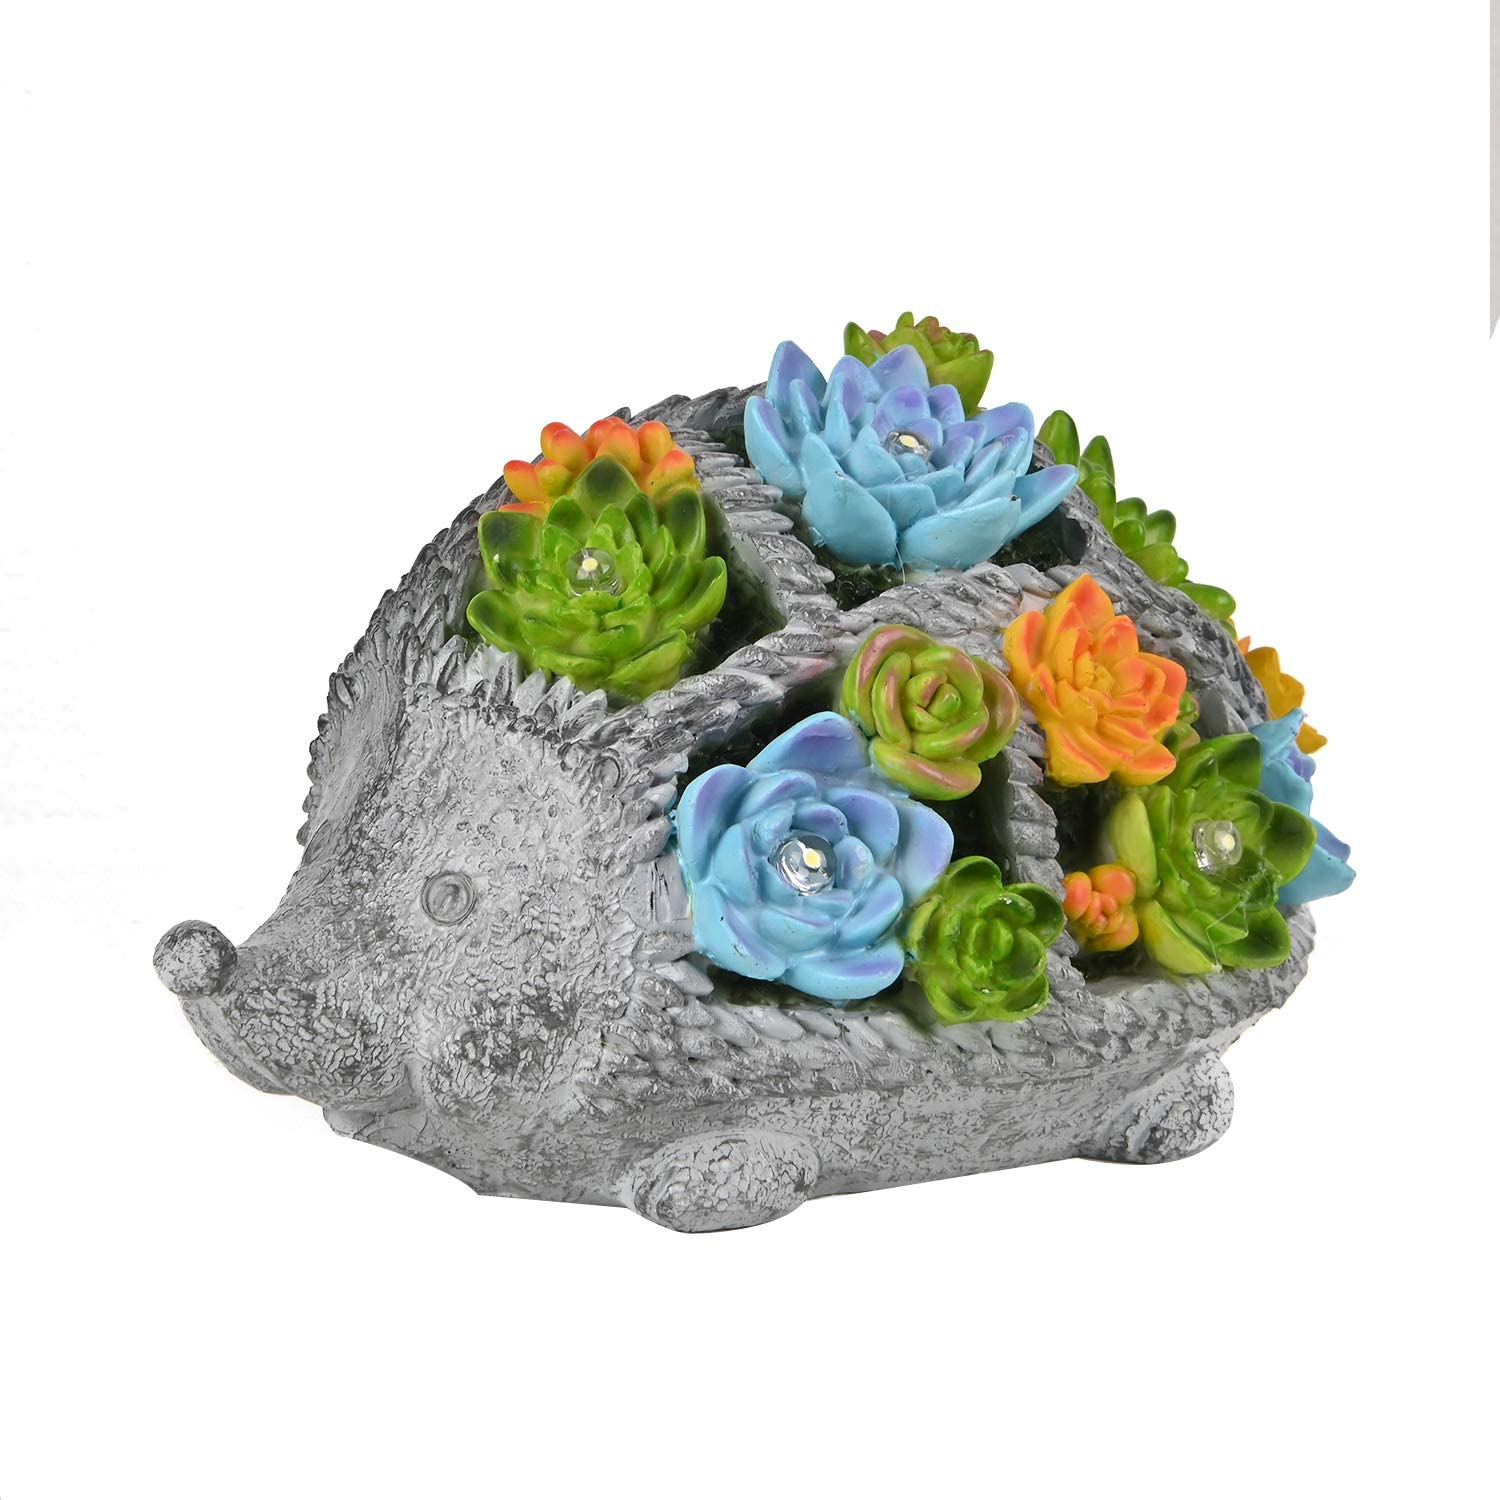 ASAWASA Hedgehog Solar Garden Statues and Sculptures Outdoor Decor, Garden Figurines with Solar Powered Lights for Patio,Lawn,Yard Art Decoration, Housewarming Garden Gift,9.7x6.1x5.7 Inch